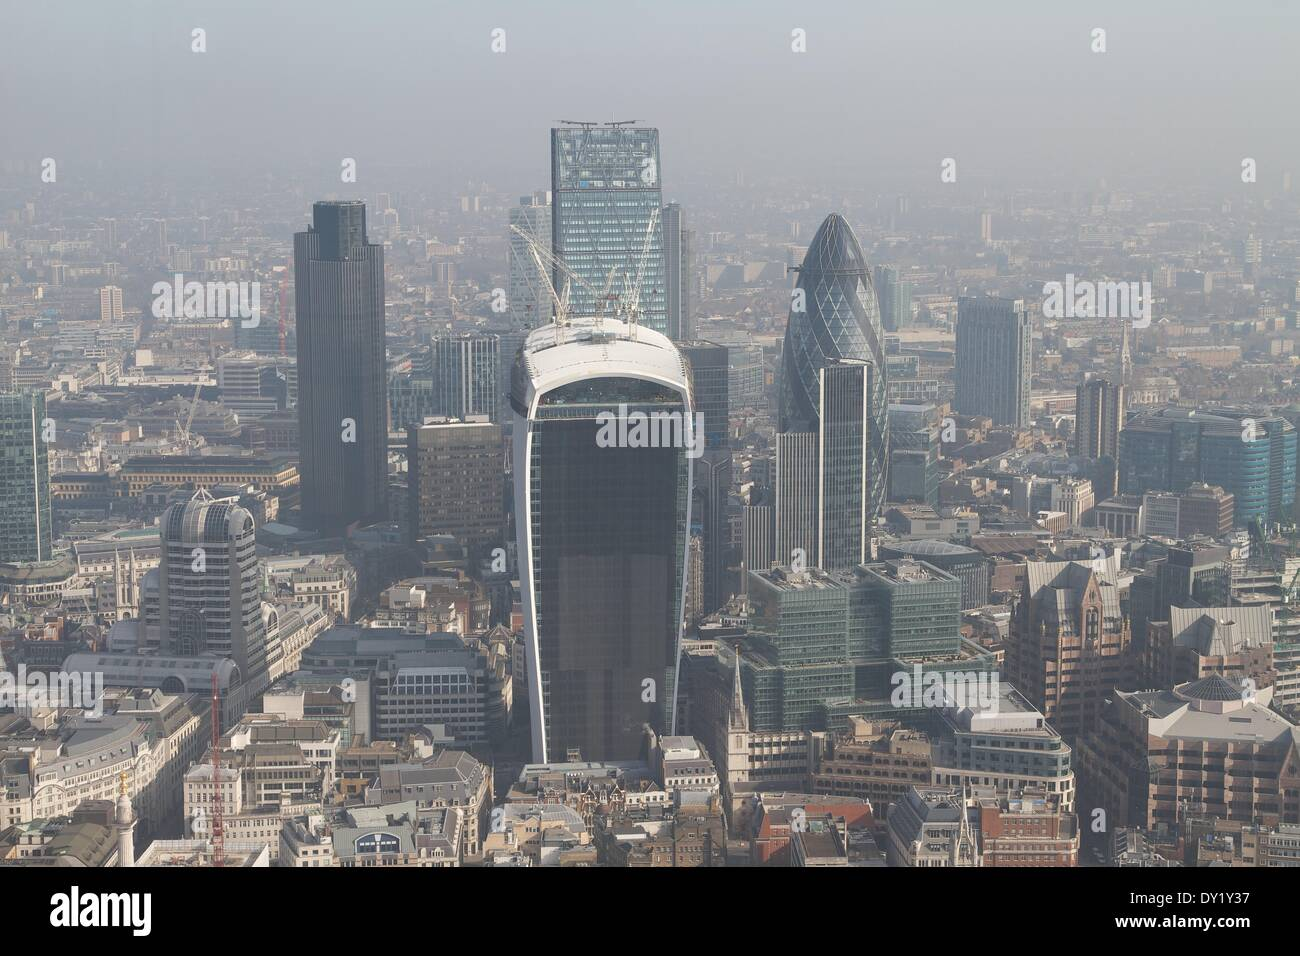 Record pollution levels recorded over the City of London, England Credit:  Paul McCabe/Alamy Live News - Stock Image